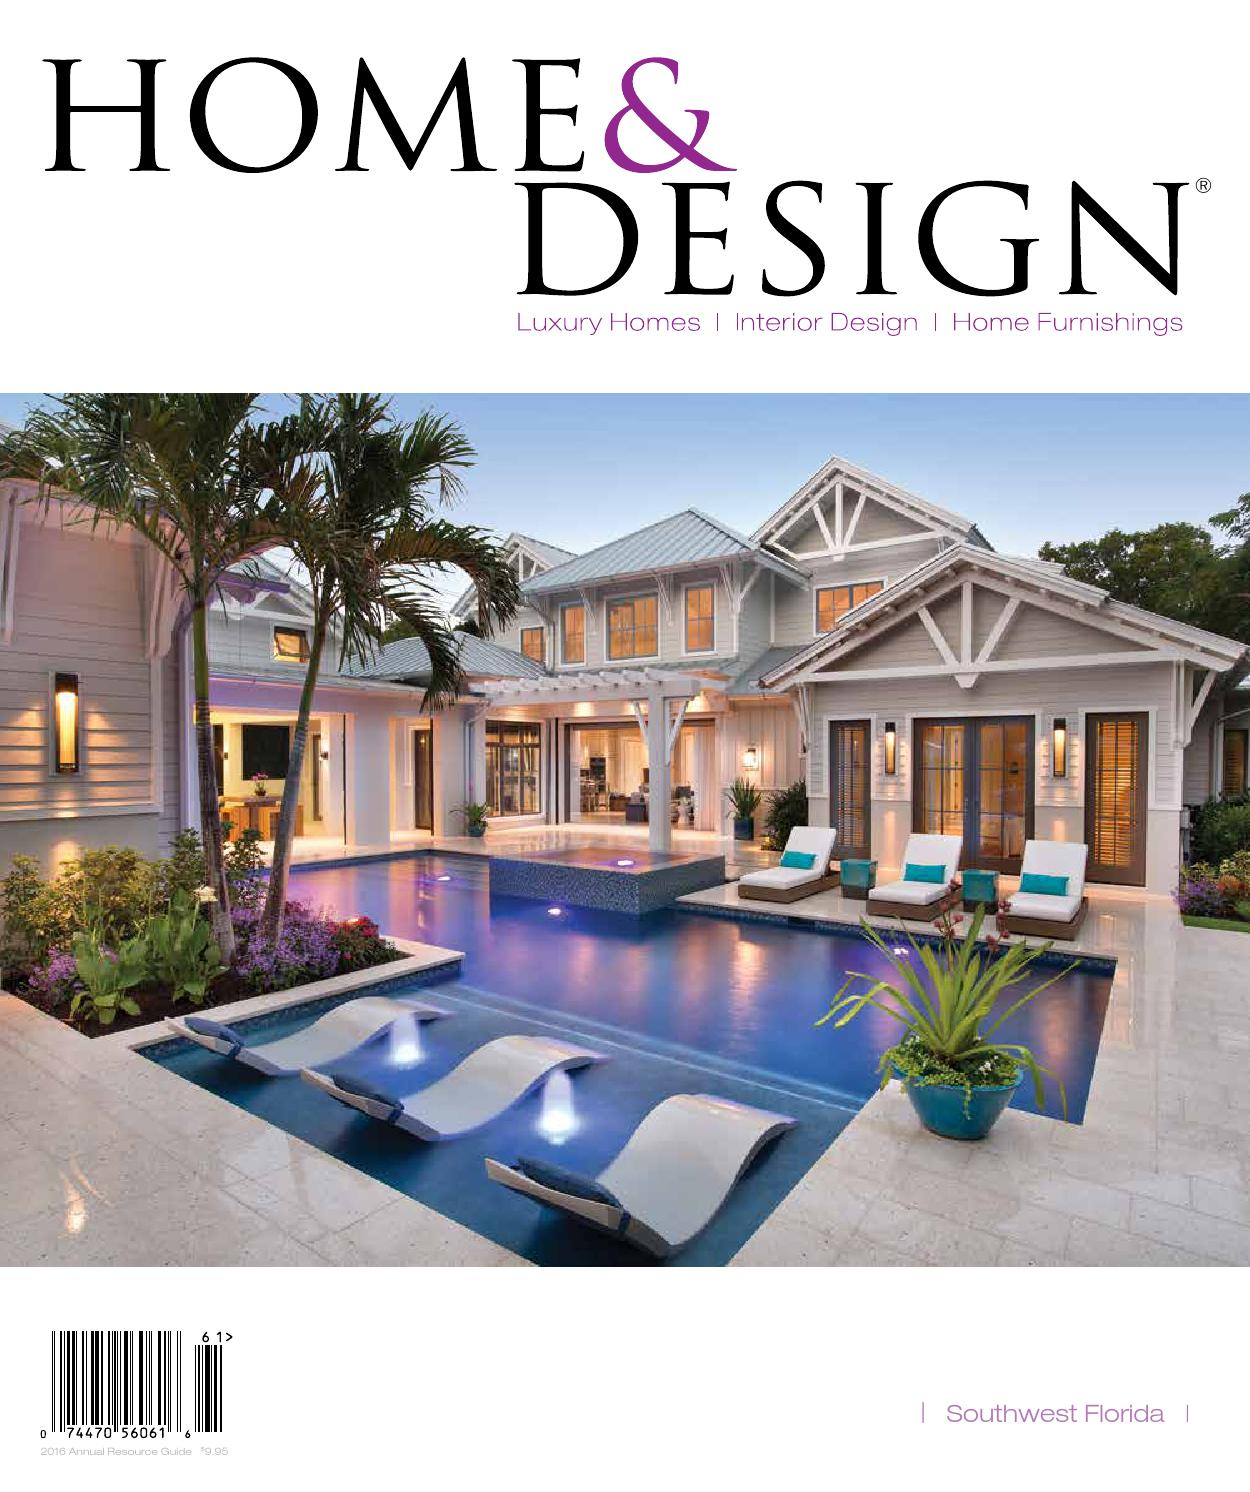 28 home design journal quality graphic resources luxury home design journal home amp design magazine annual resource guide 2016